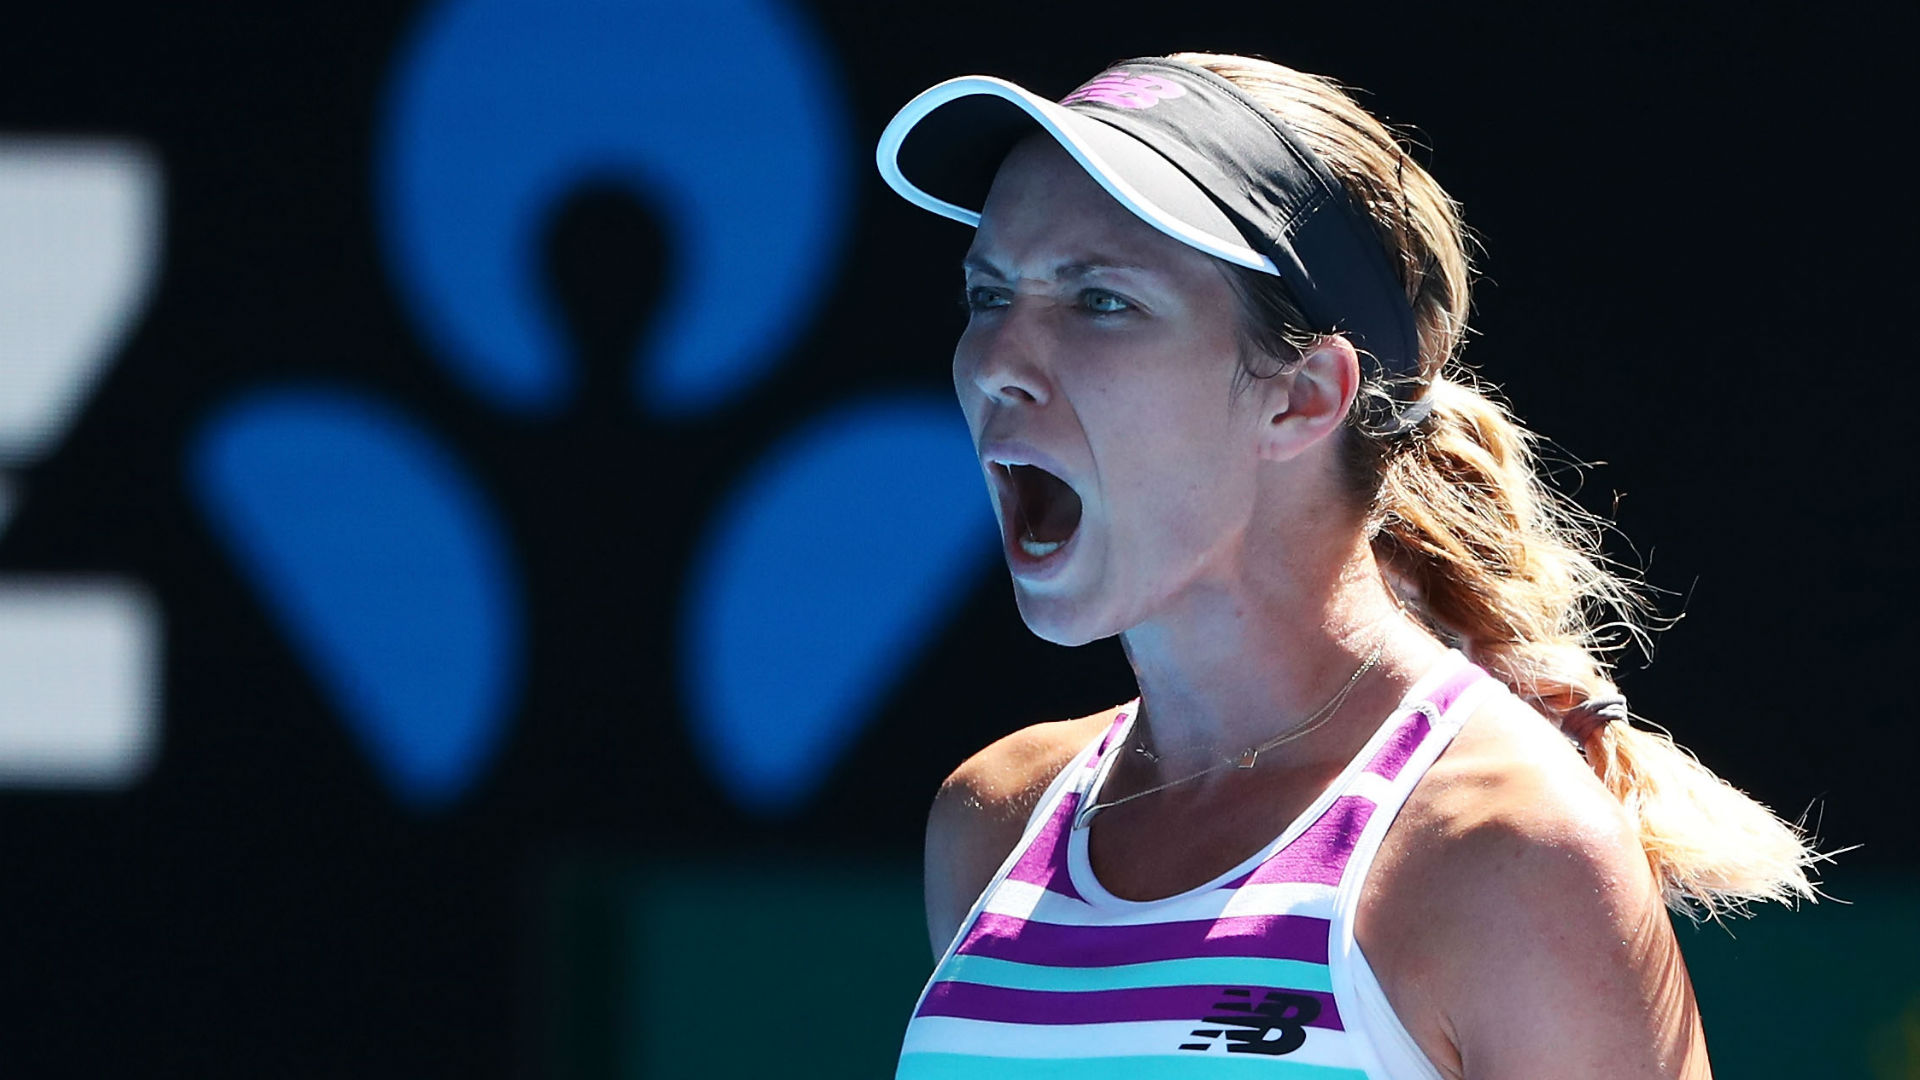 Collins stuns Kerber to breeze into Australian Open quarterfinals